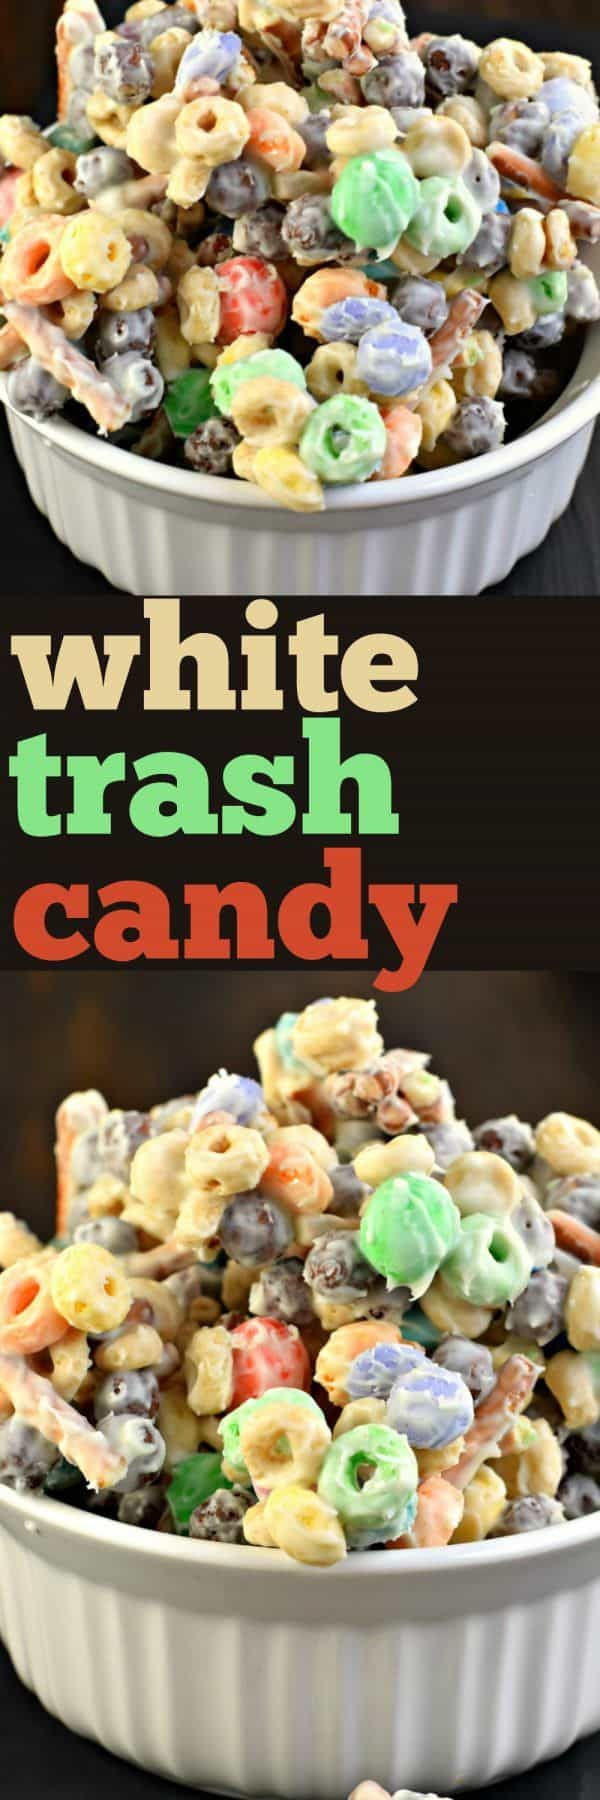 To make this easy white trash candy, just toss together some cereal, pretzels, m&m's and melted white chocolate.